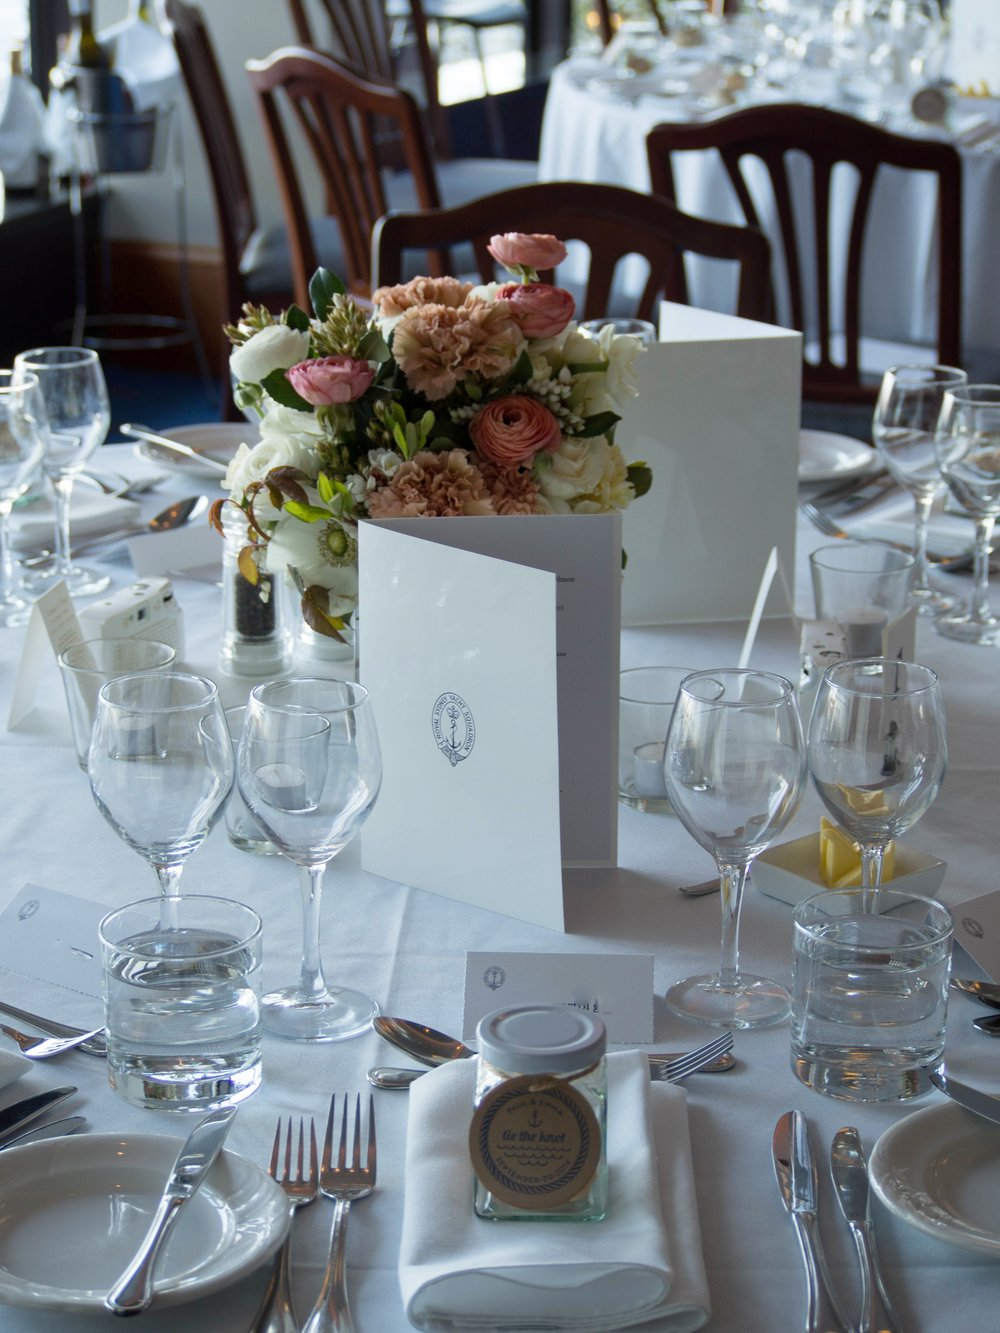 Wedding Favours at Reception - Kulinary Adventures of Kath